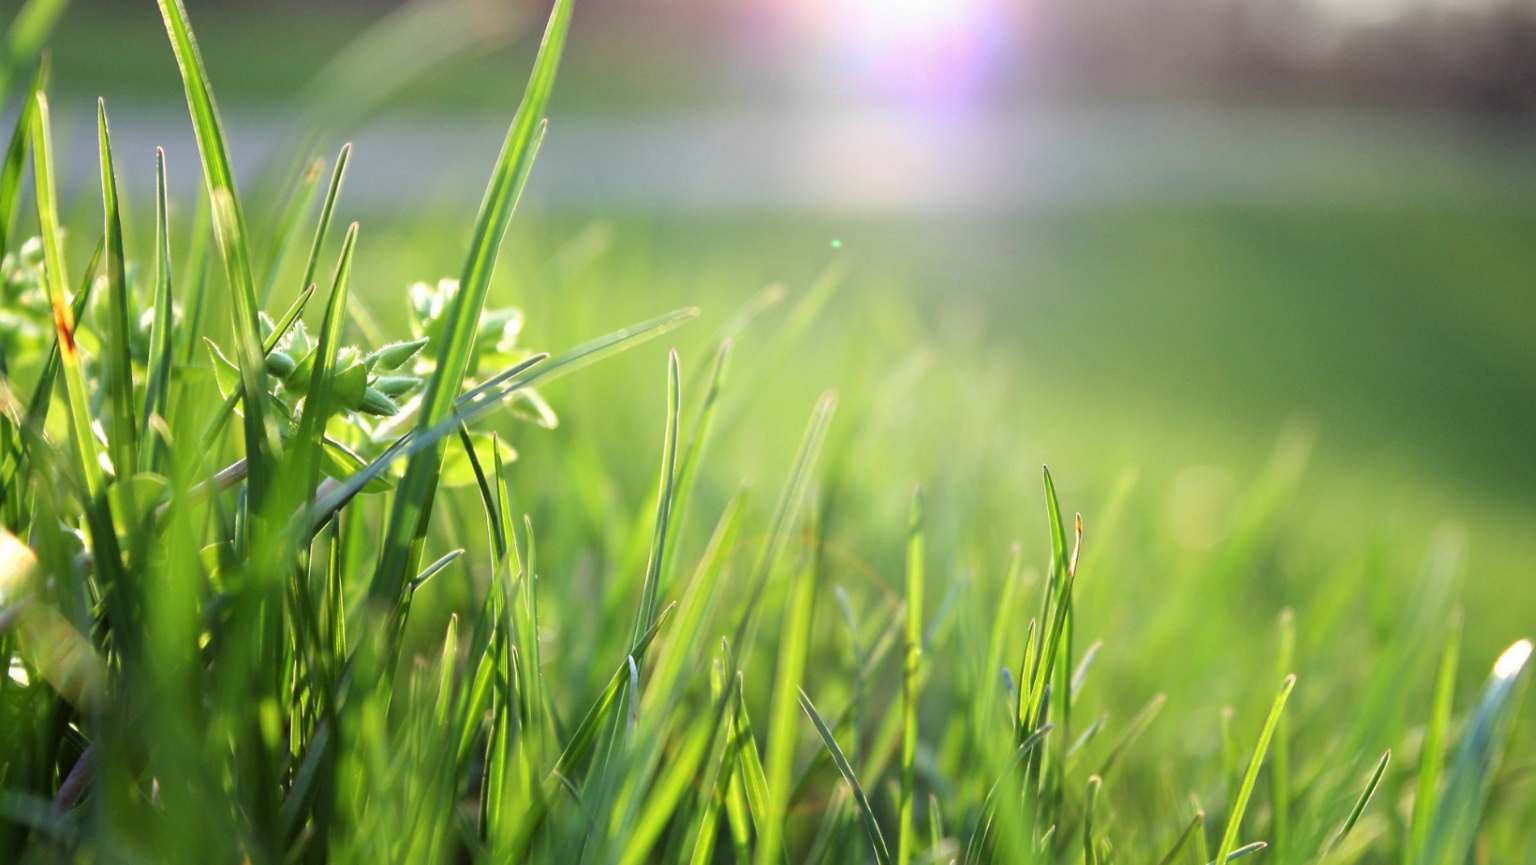 Federal judge upholds ruling for city that fined an elderly man $30K for uncut grass while taking care of dying relative